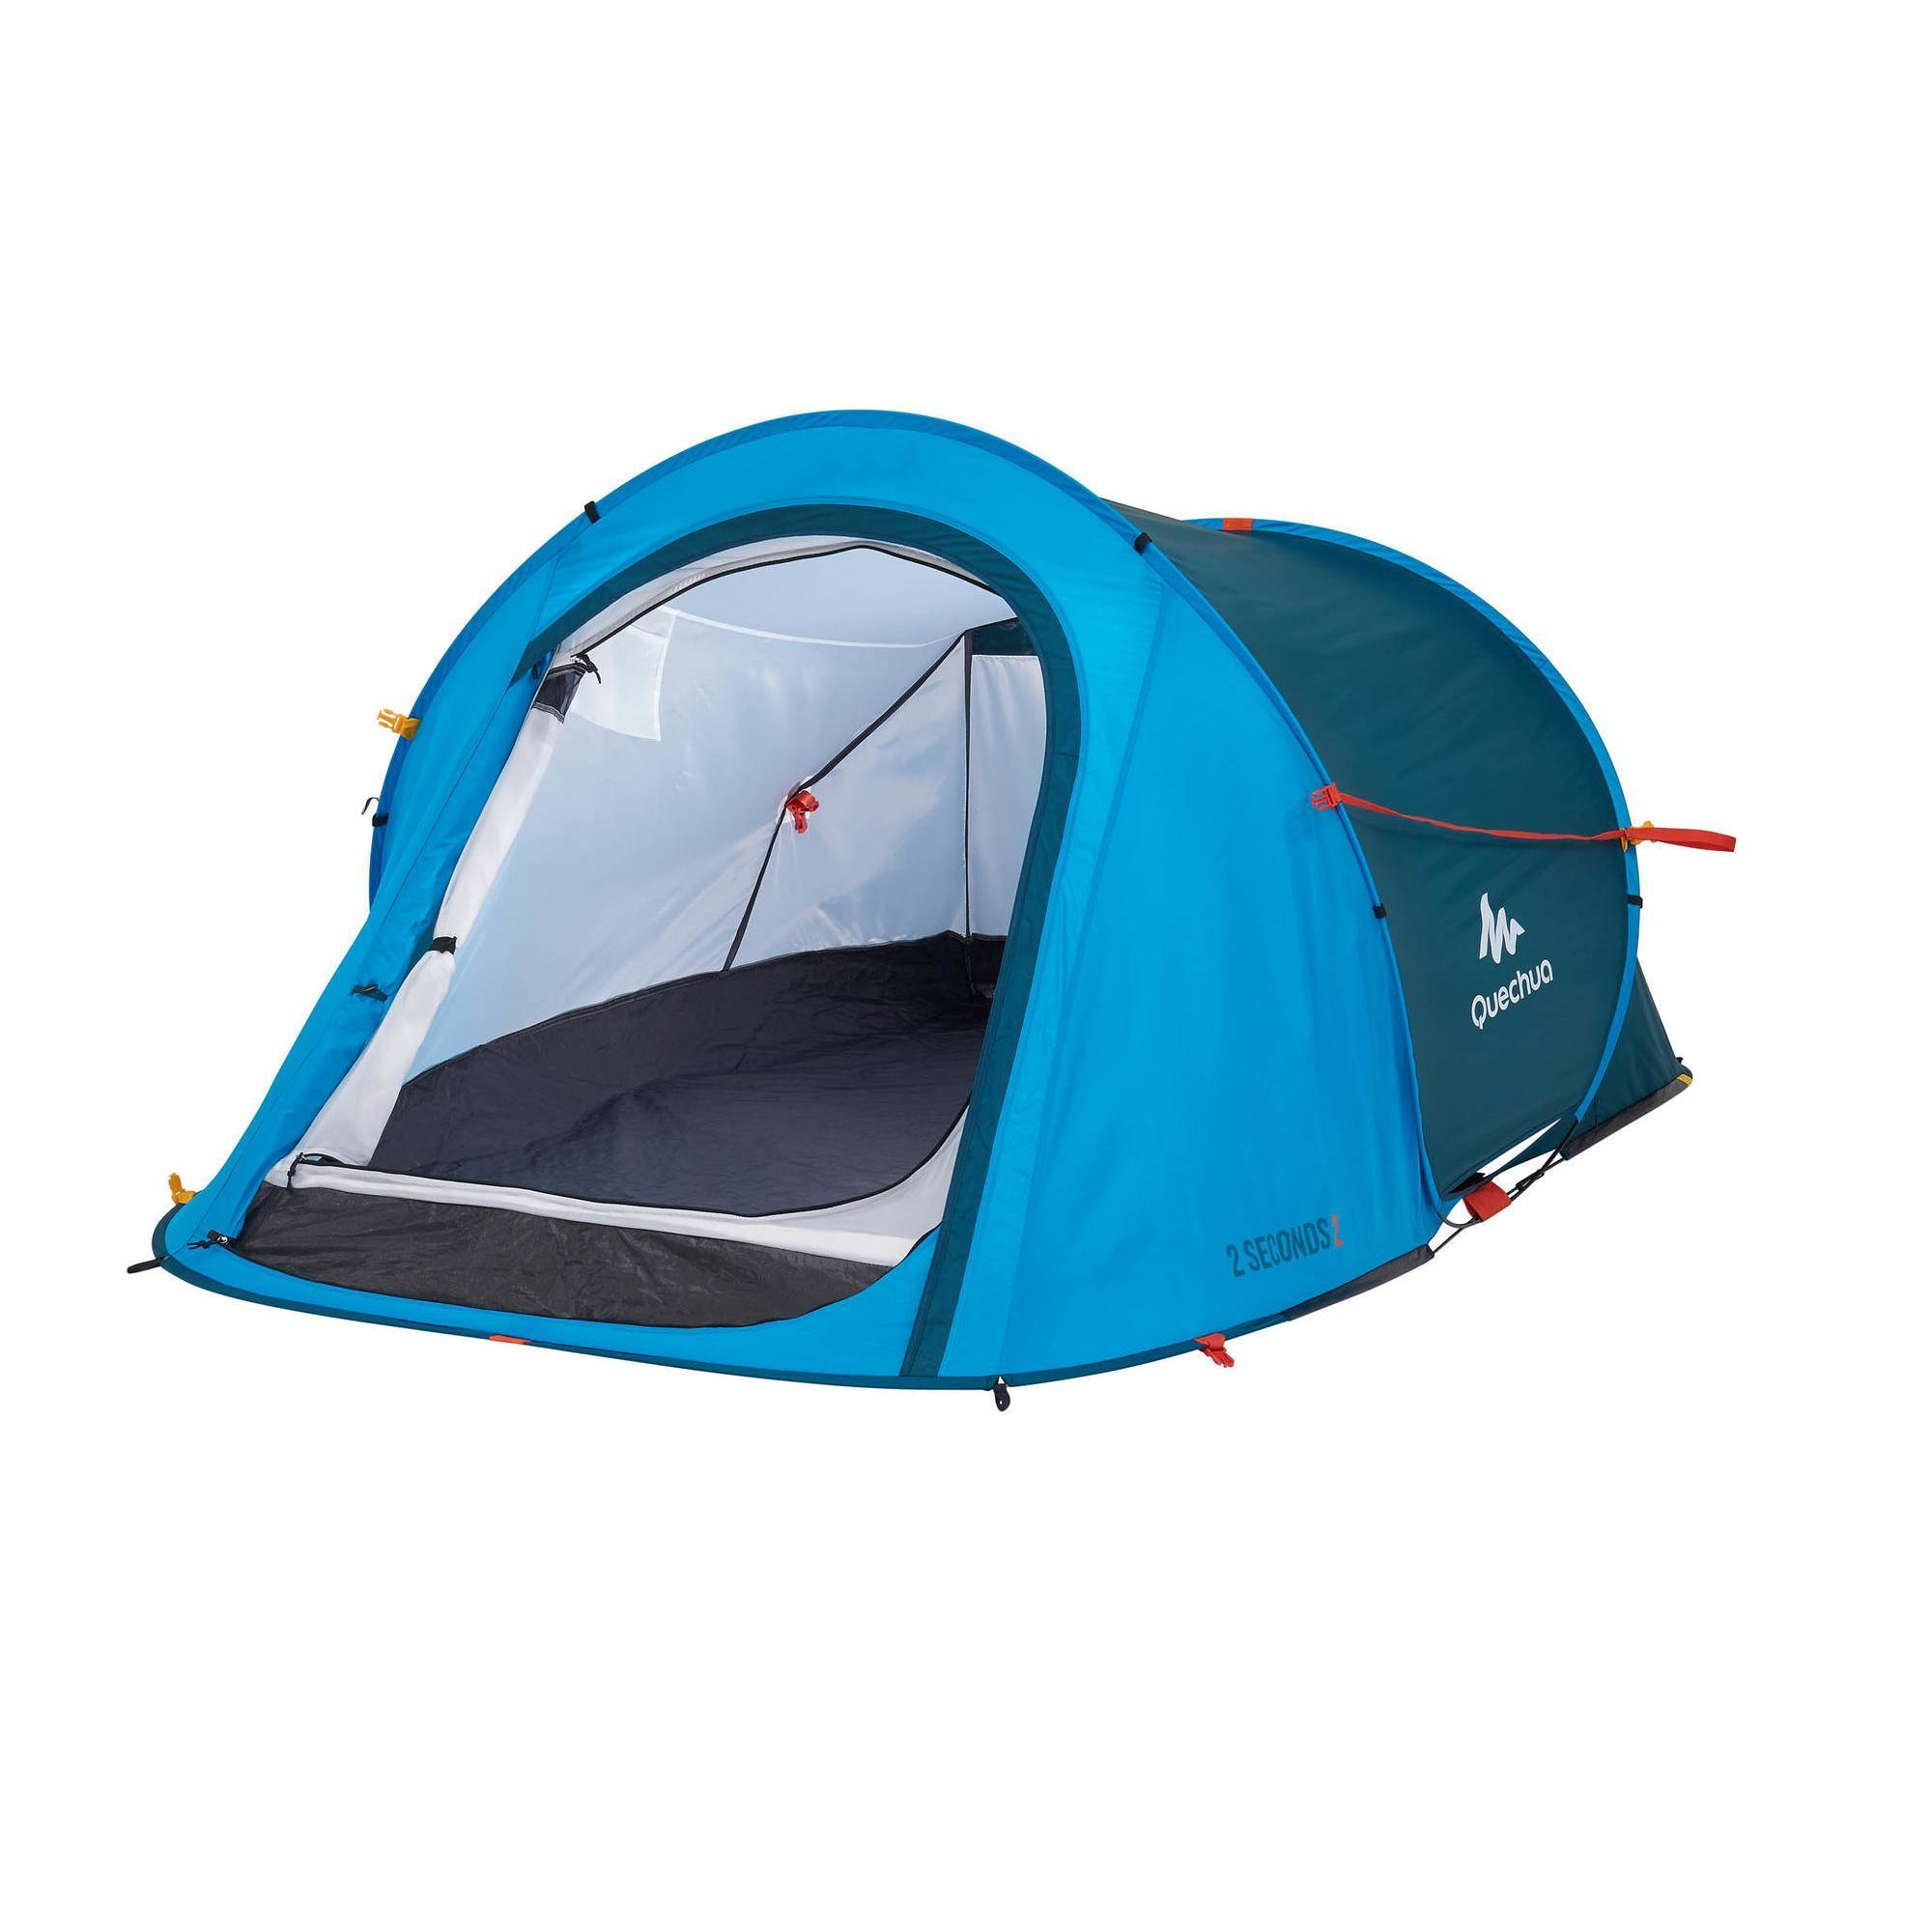 2 Seconds 2 Pers - Blue  sc 1 st  Quechua : two second tent - memphite.com